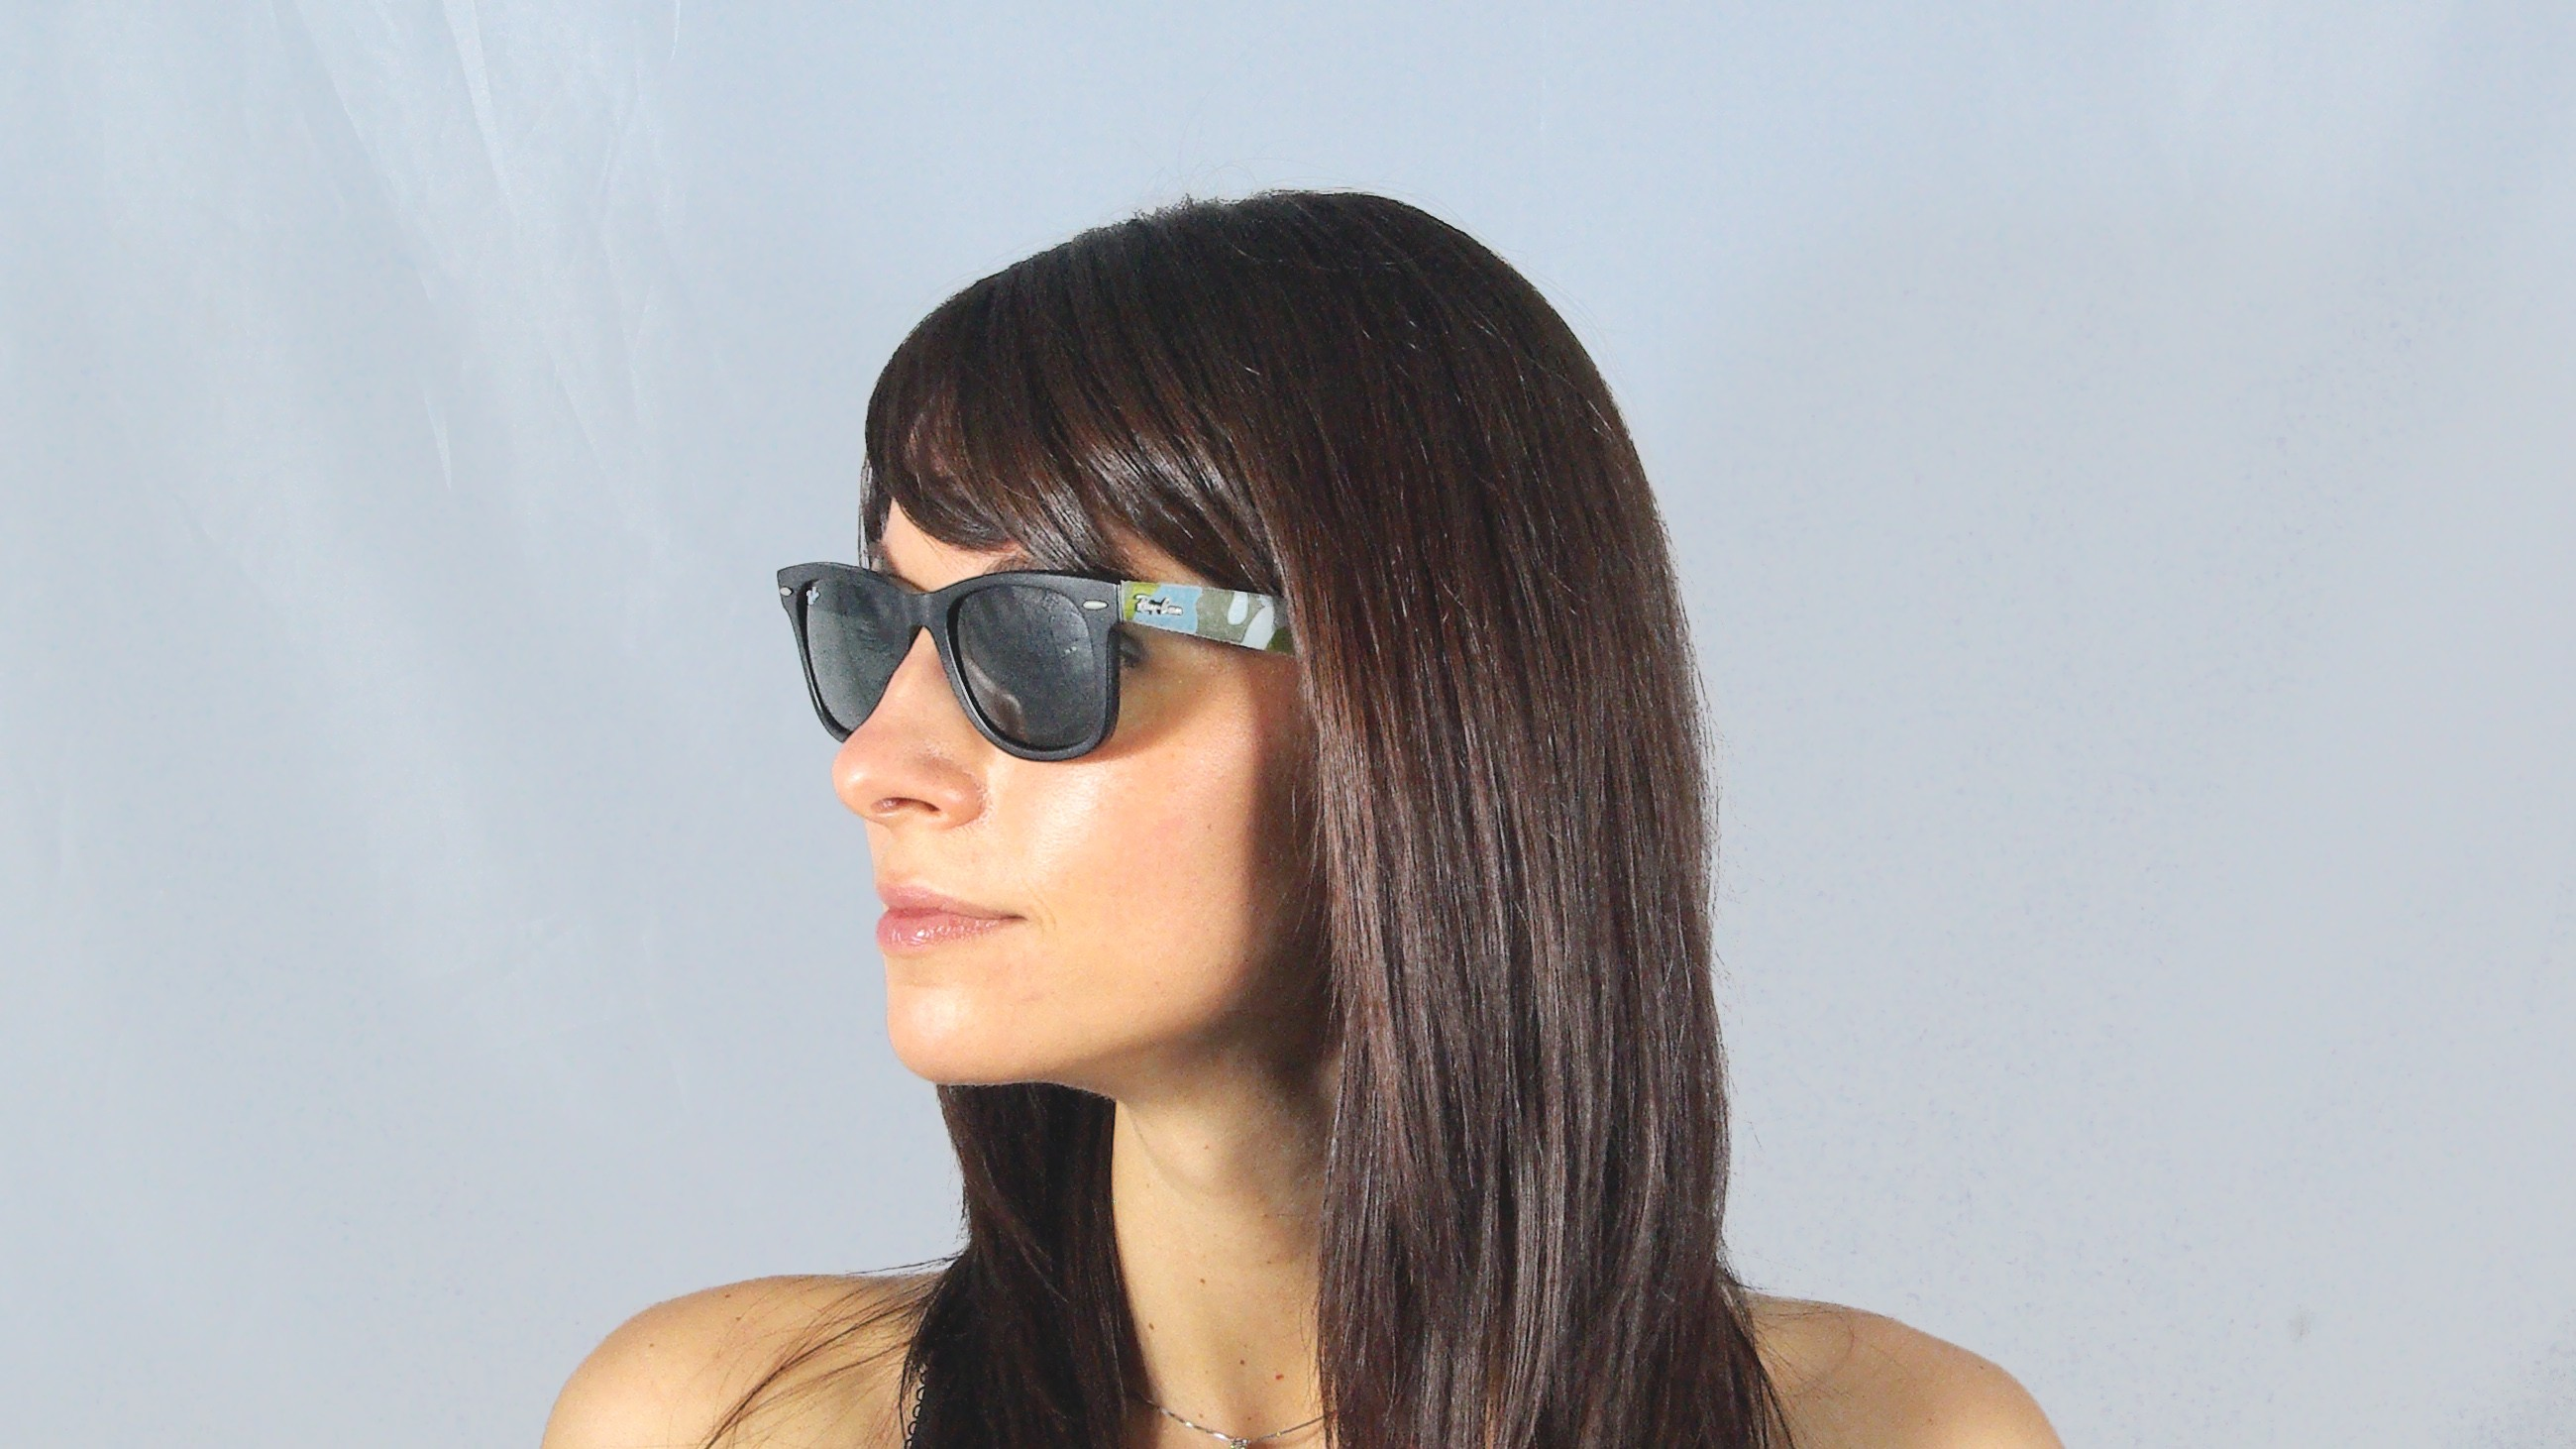 d1d0ccad462a8 Ray Ban Rb2140 Urban Camouflage « Heritage Malta